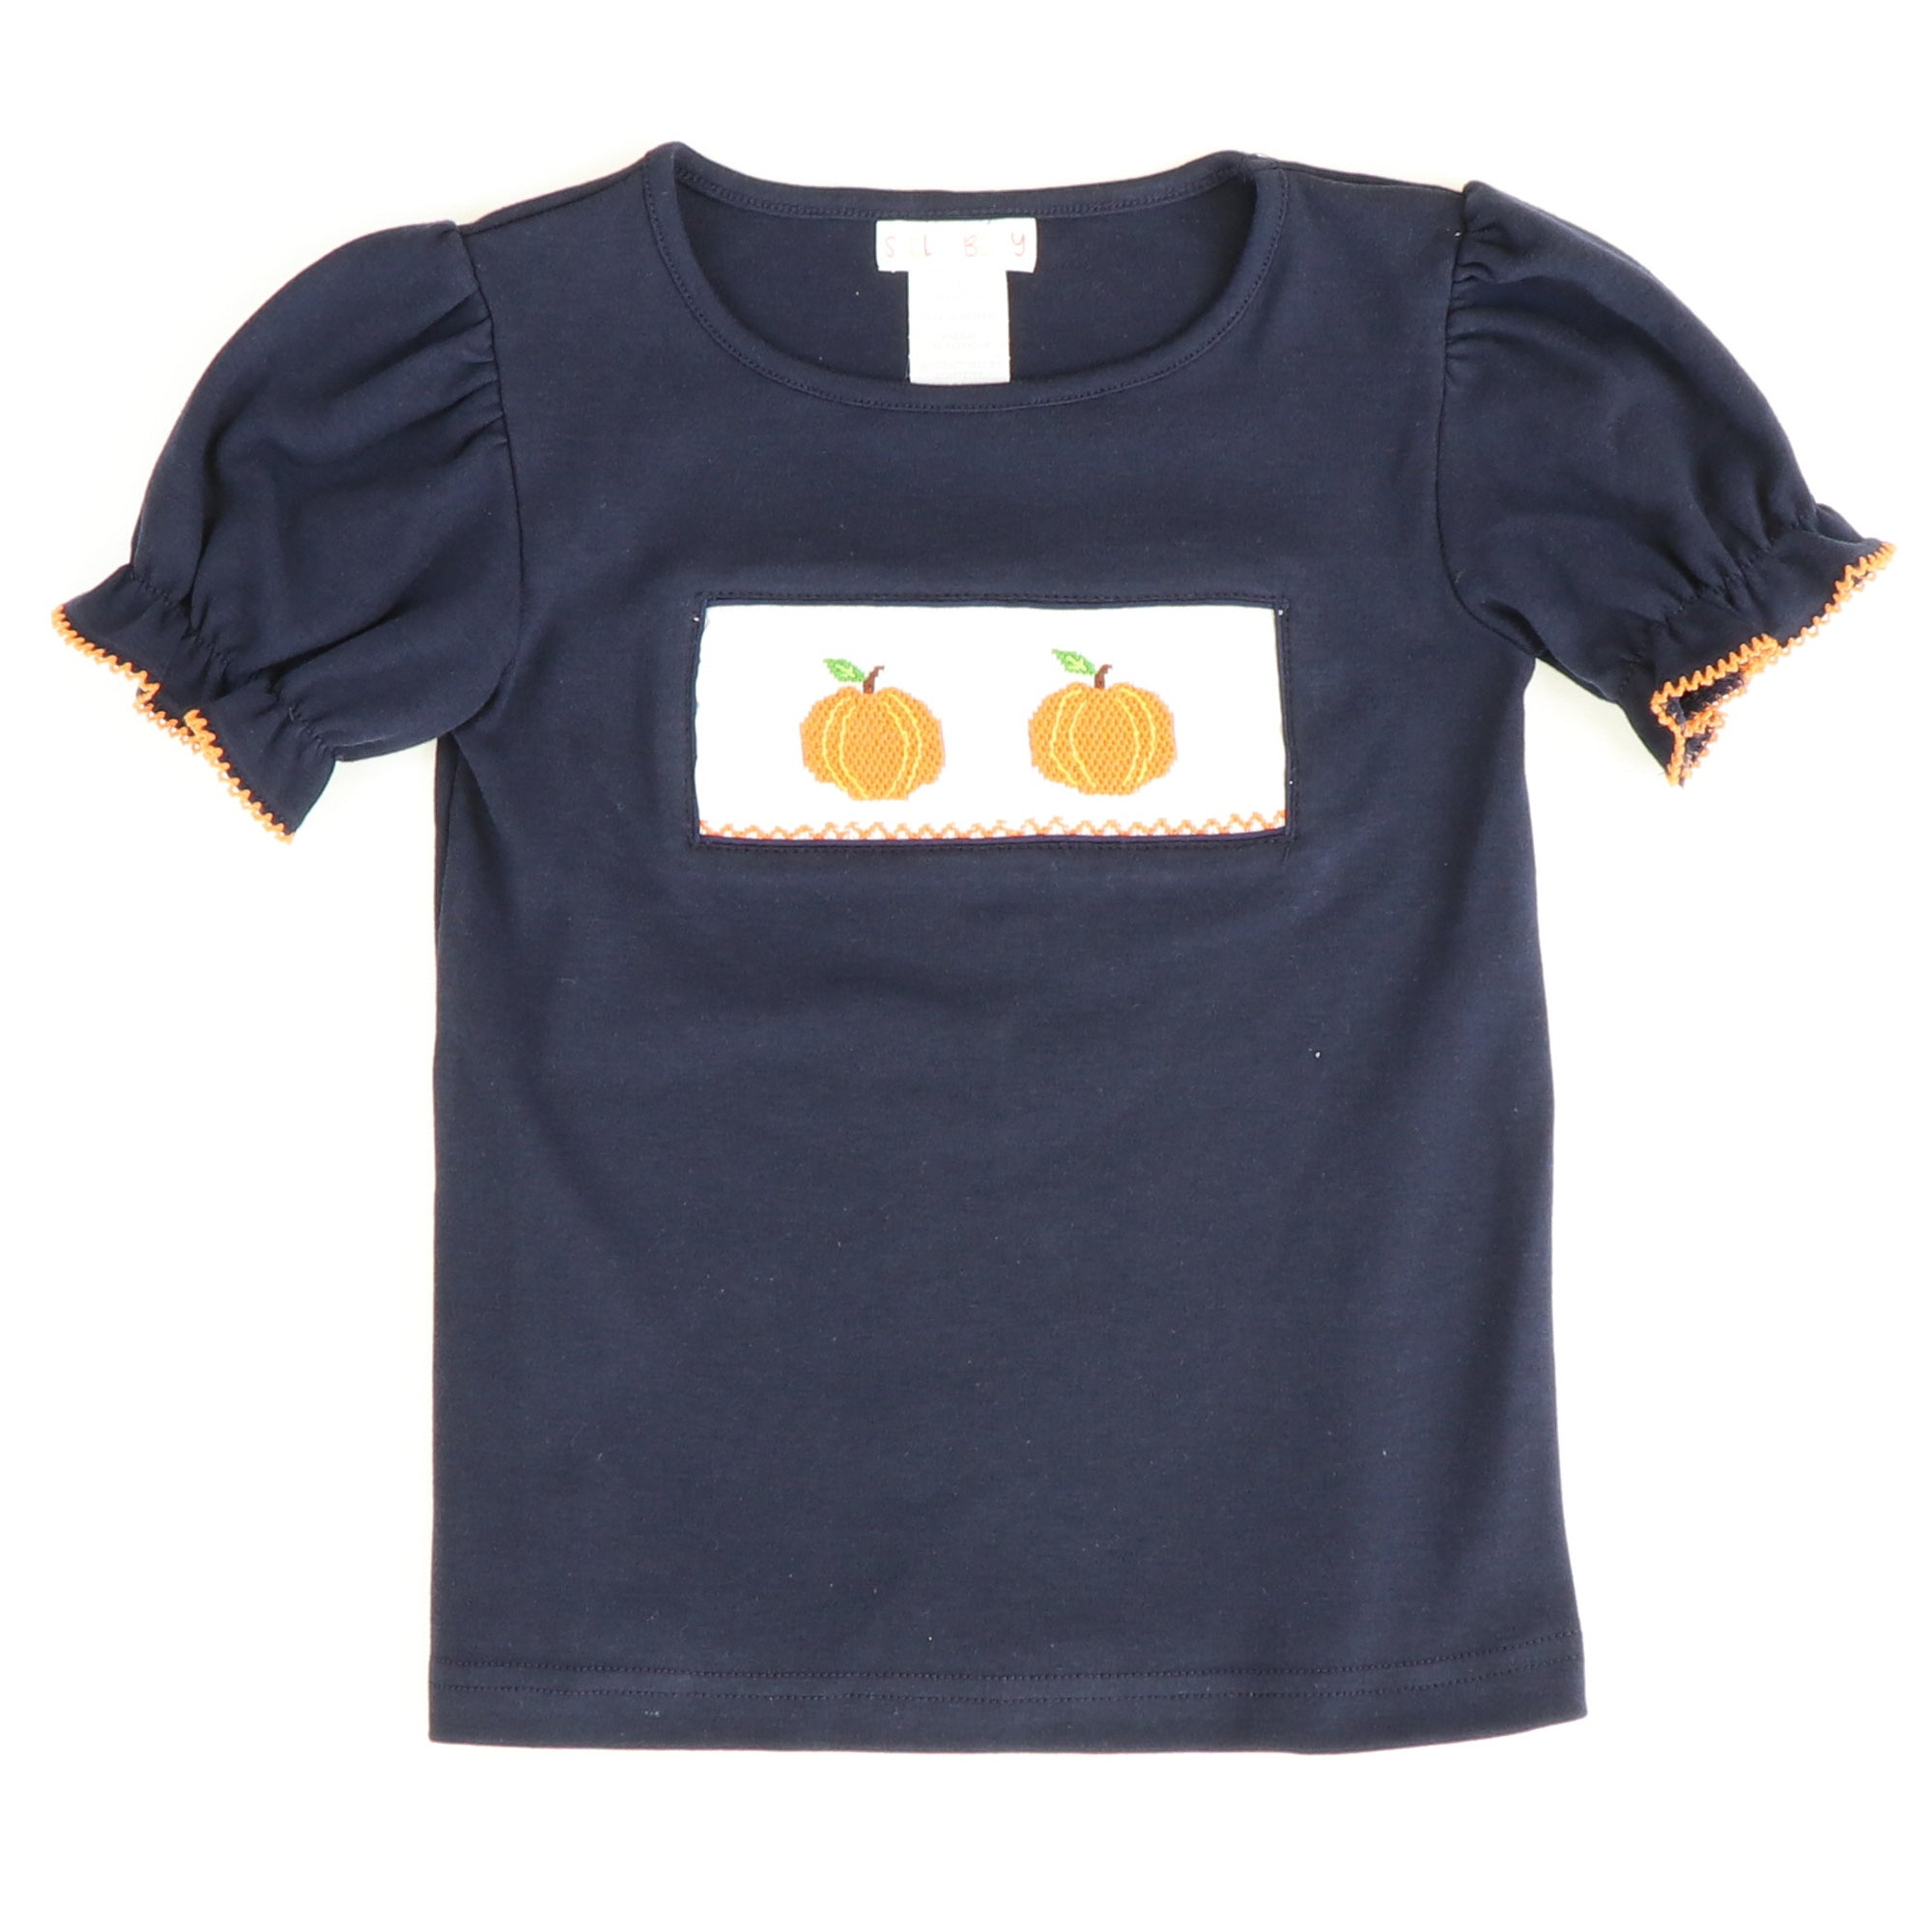 Smocked Pumpkins Ruffle Top - Navy Blue